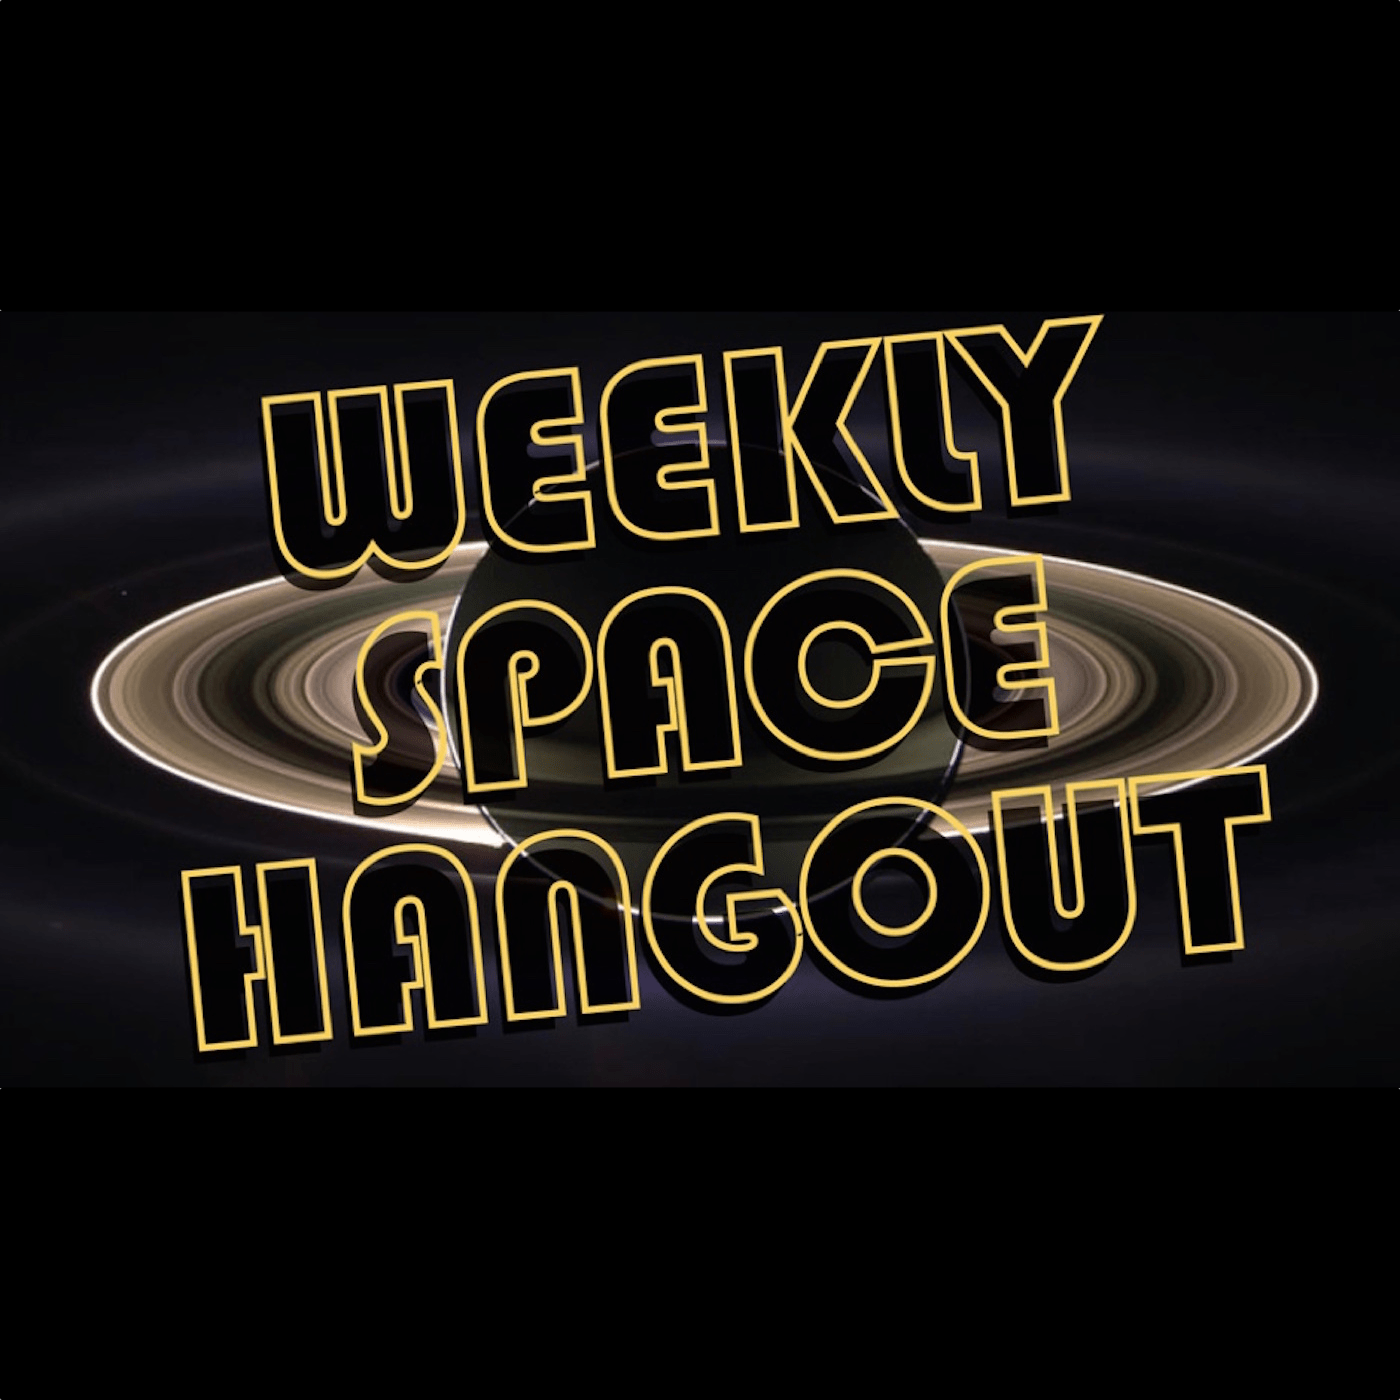 Weekly Space Hangout Video